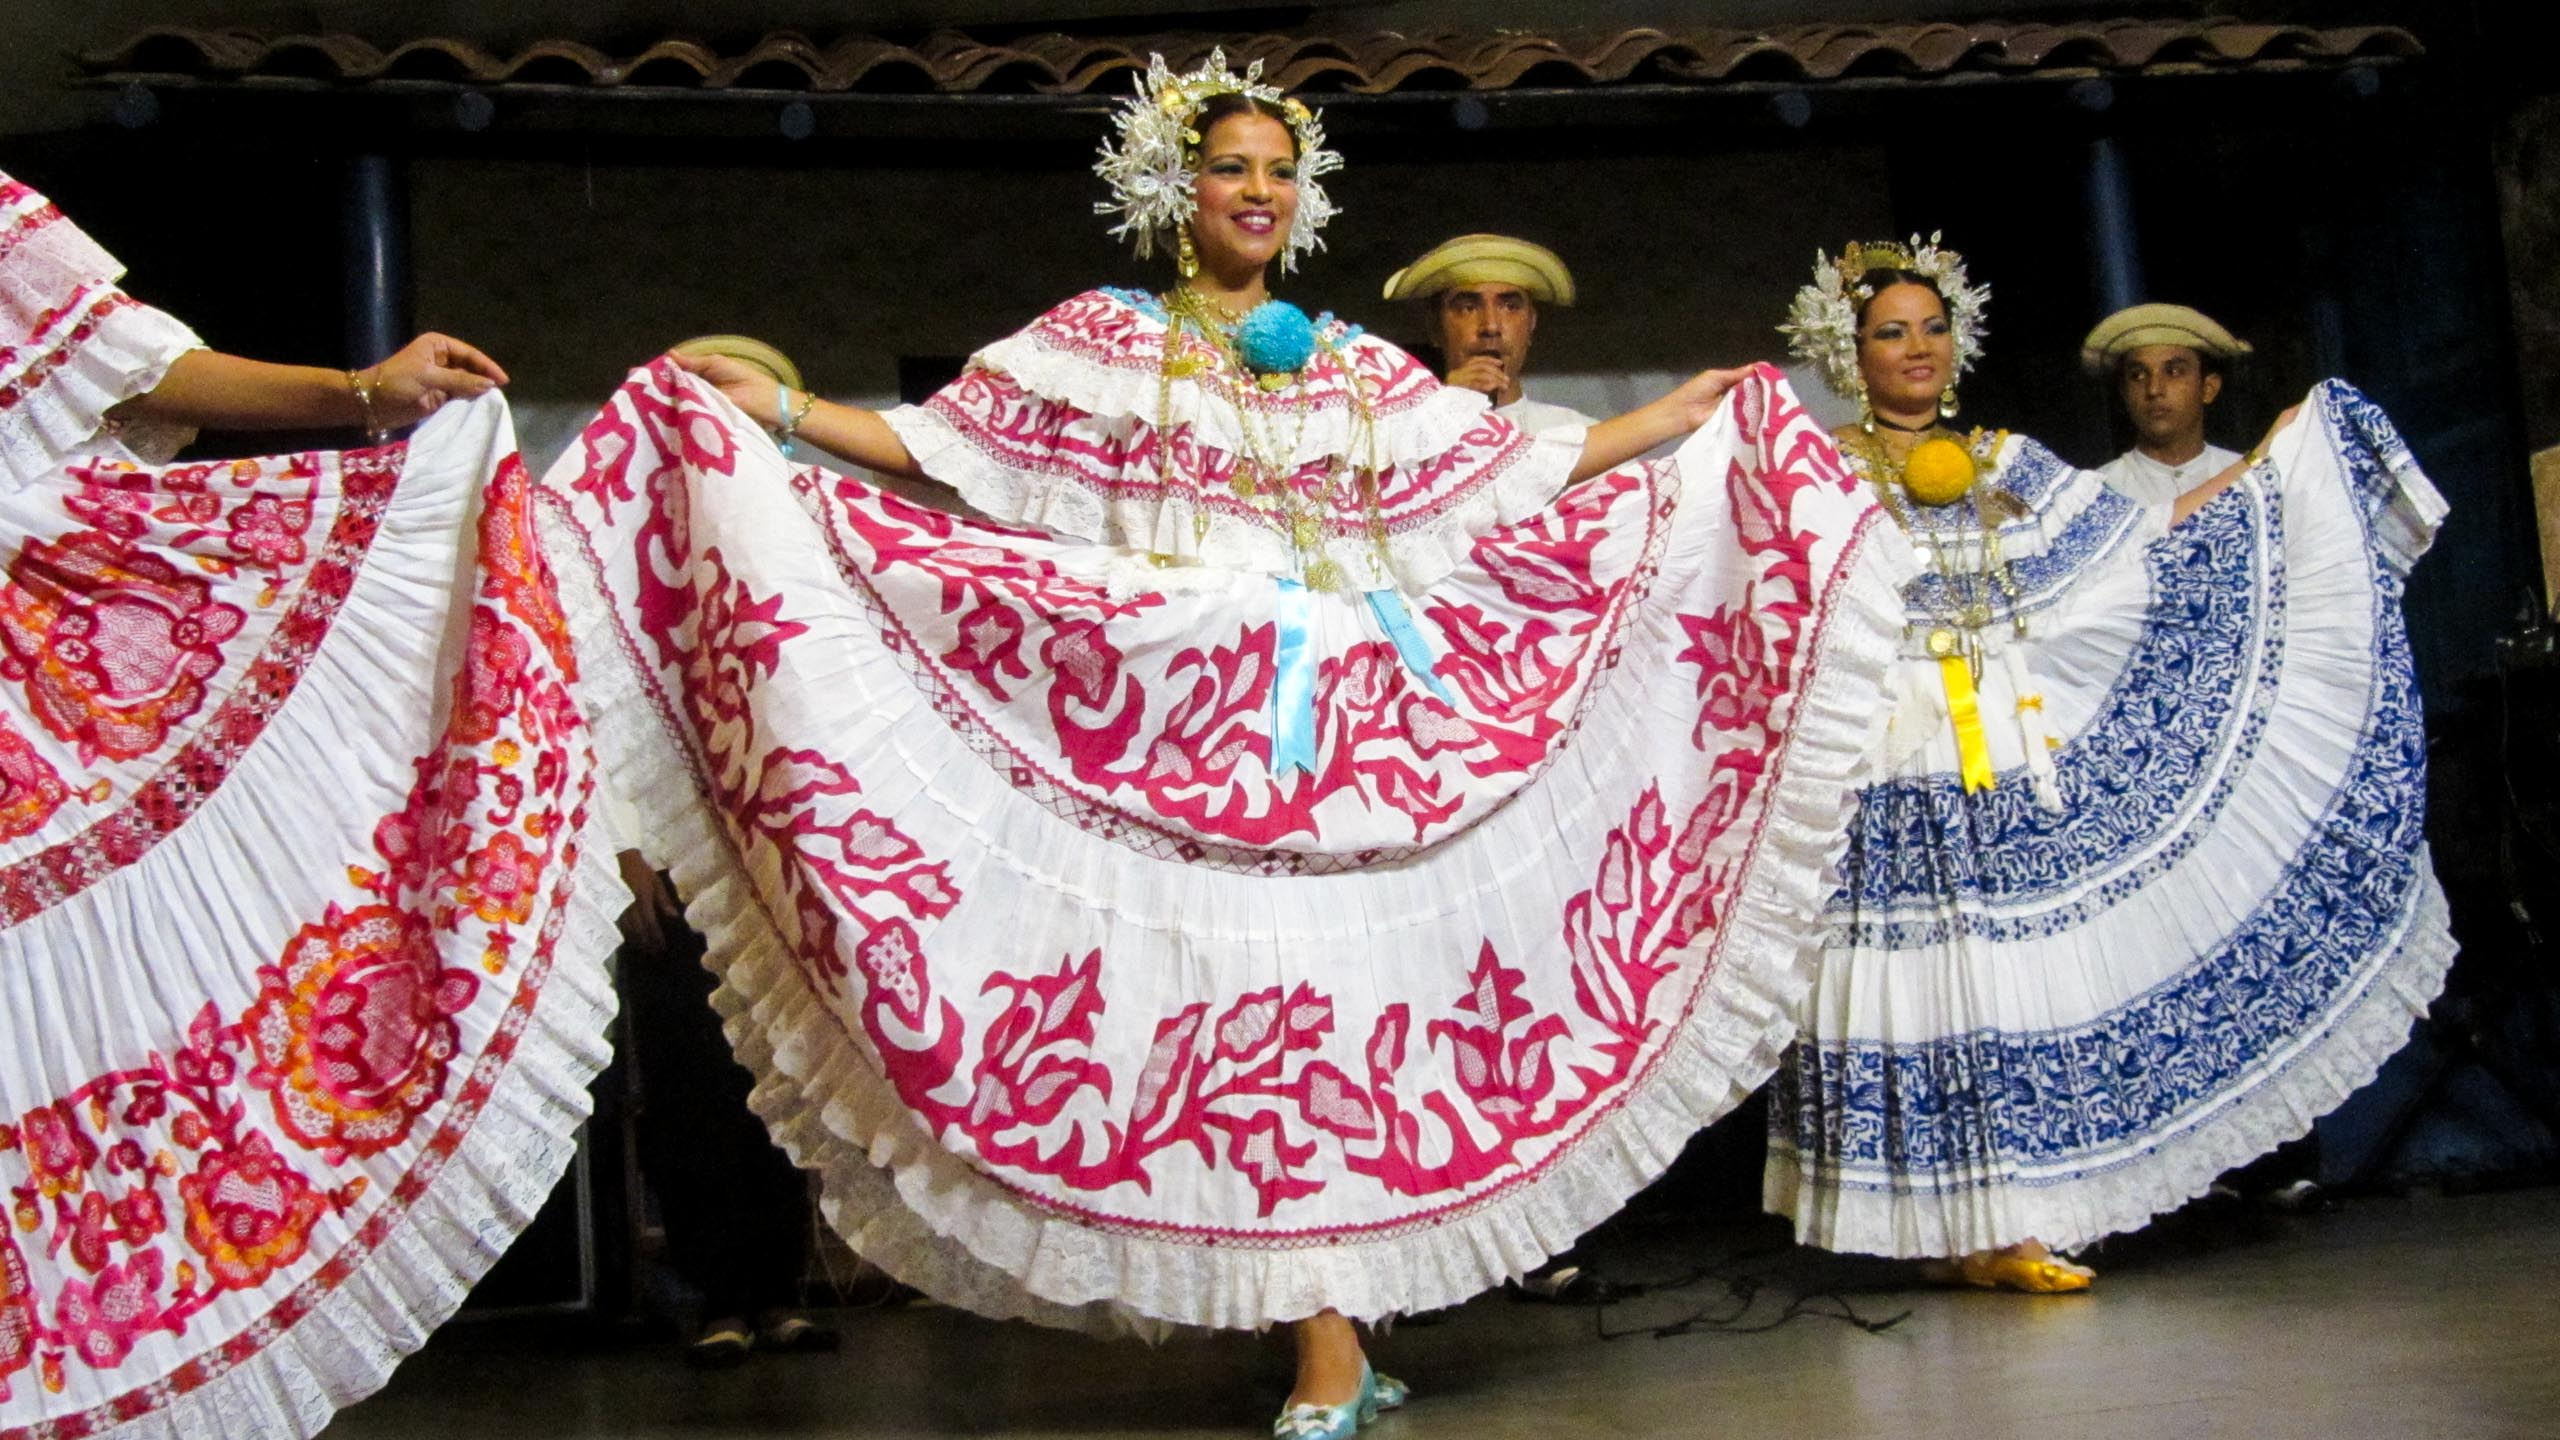 Panama women hold skirts wide while dancing